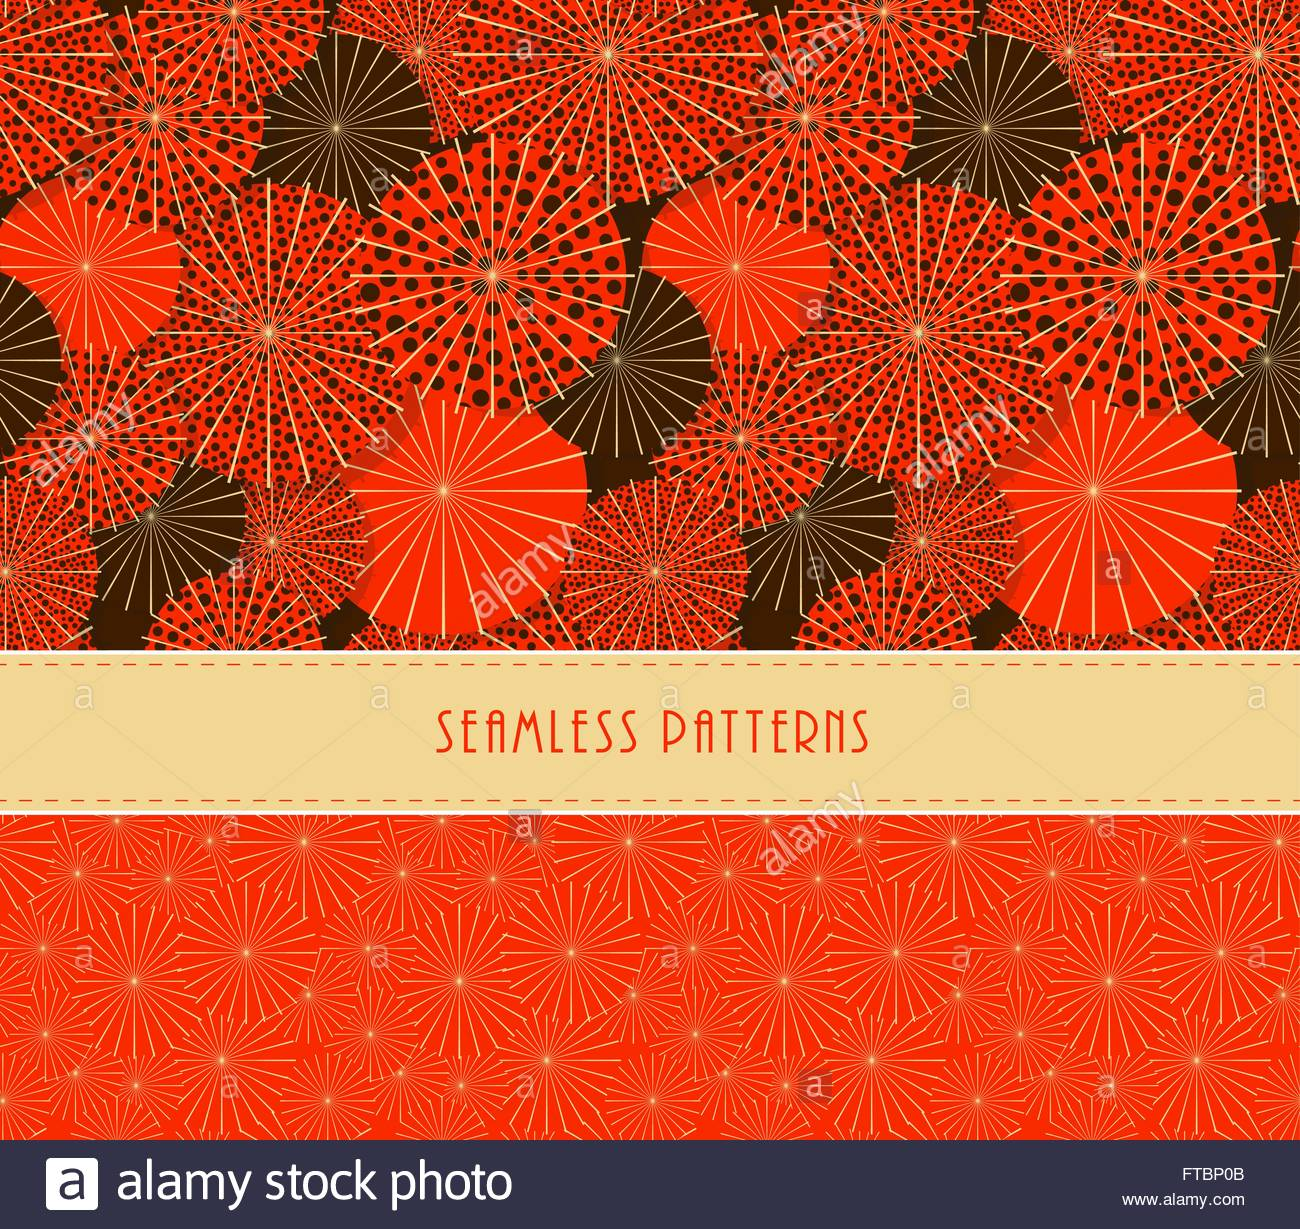 A Set Of Two Japanese Style Umbrella And Fireworks Seamless Patterns